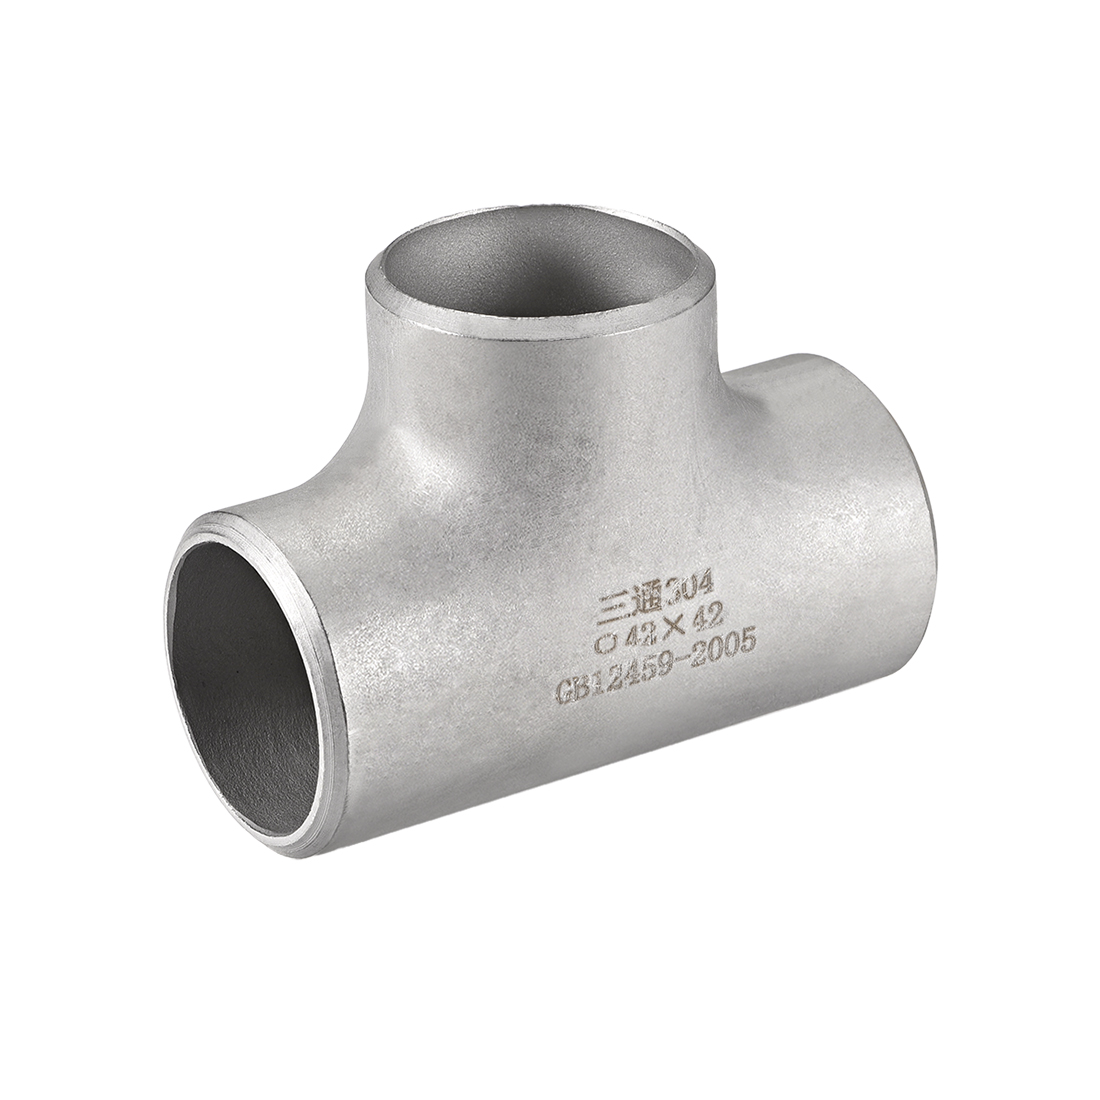 Stainless Steel 304 Pipe Fitting 35mmx38mmx35mm Tee Shaped Connector Coupler